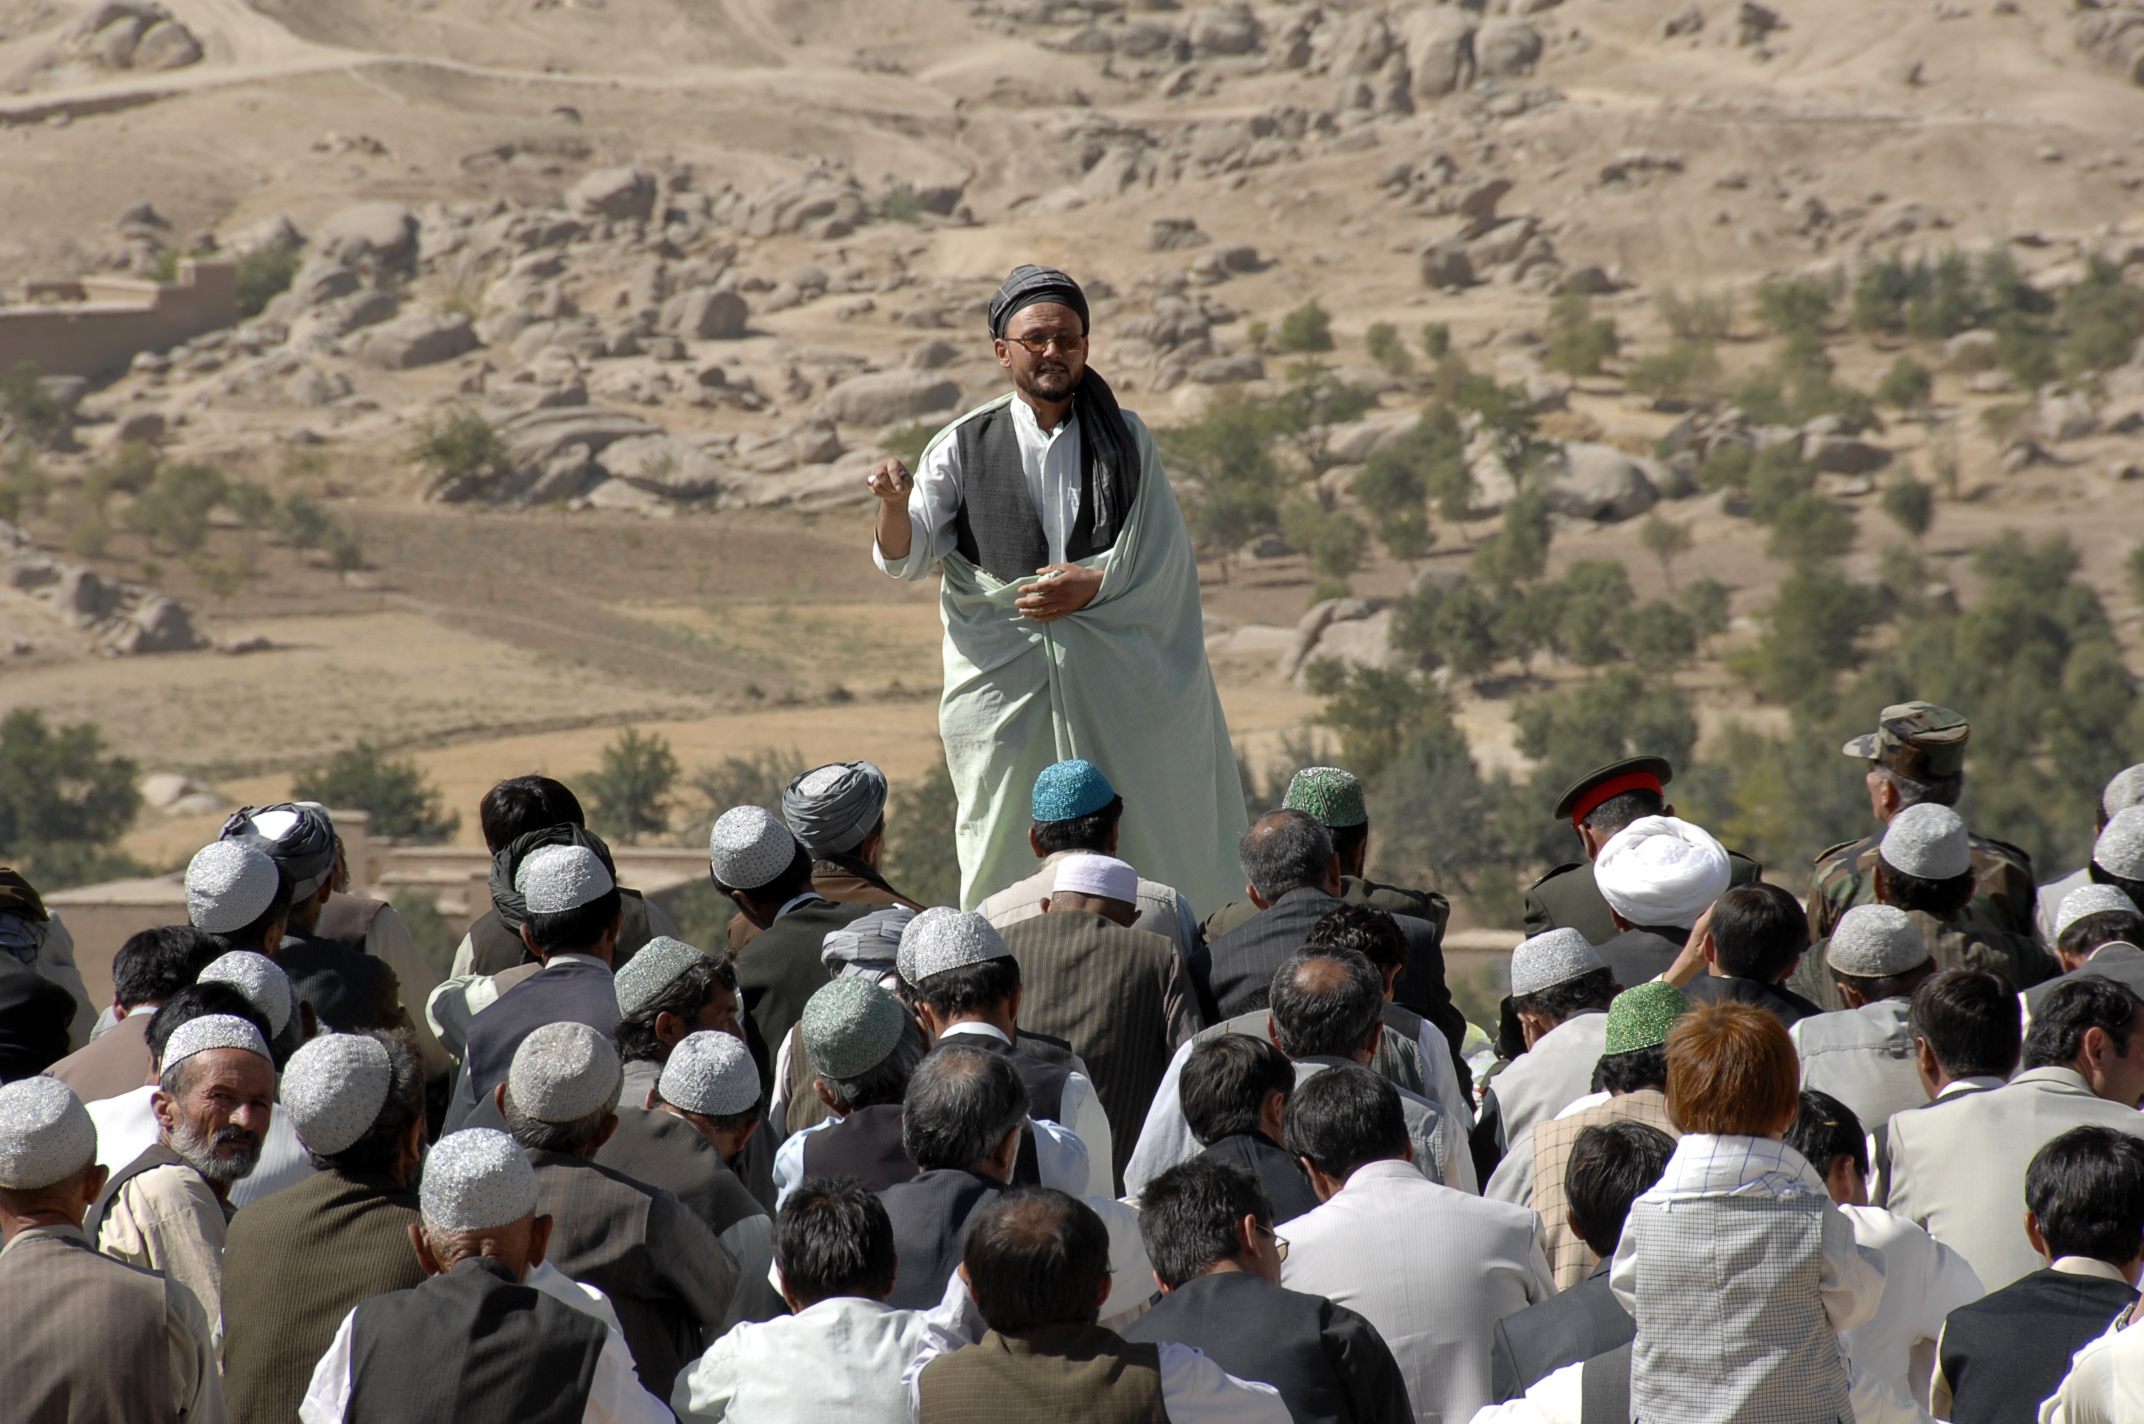 why do sunnis taliban hate shias essay 25102009 i still cant understand why are sunnis always killing innocent shias  why do sunnis kill  graveyards and i also hate humans naturally what i do.